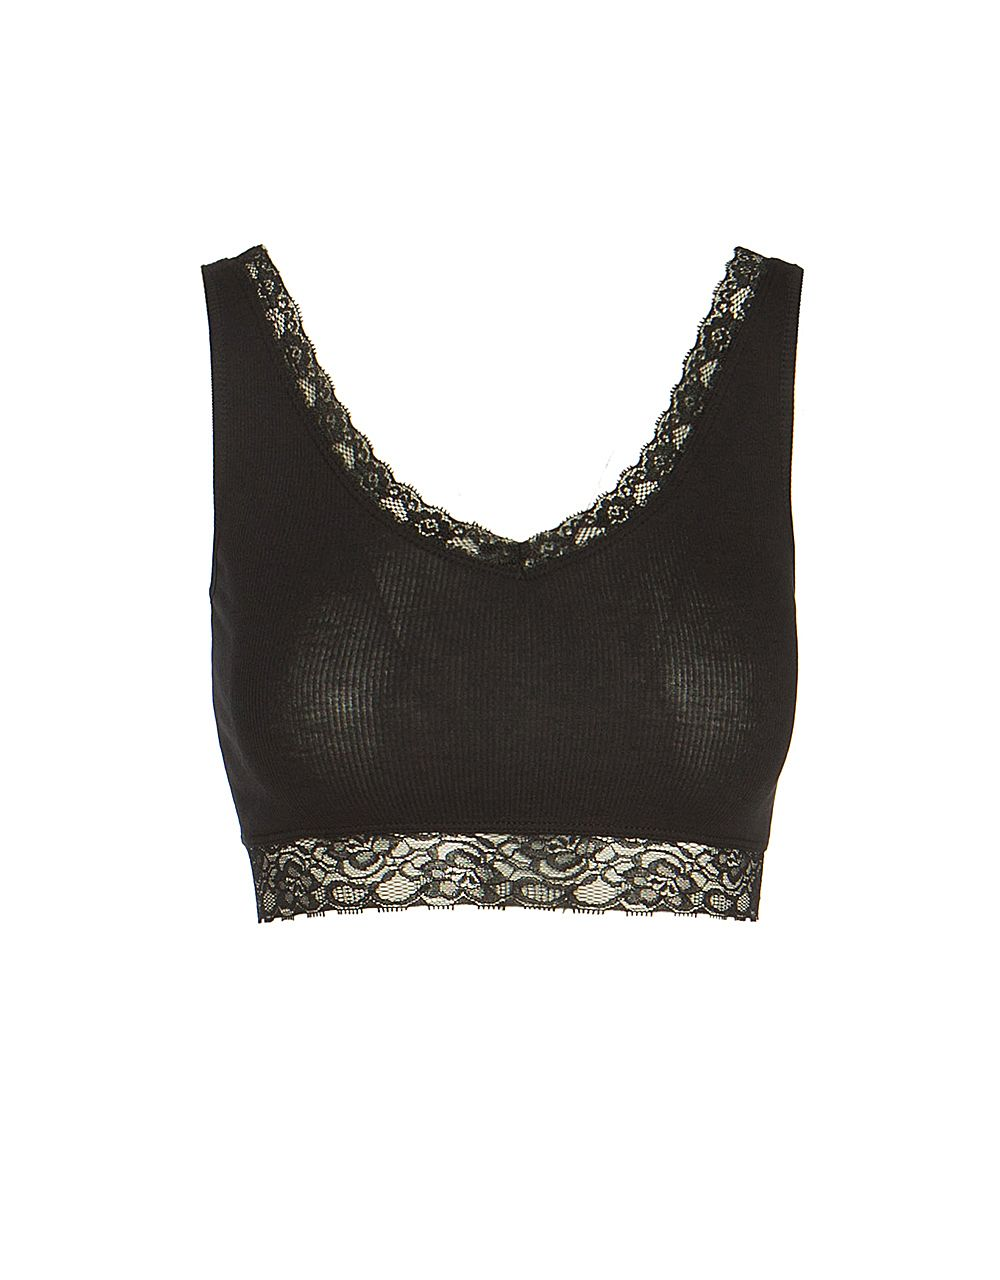 LACE RIB BUSTIER